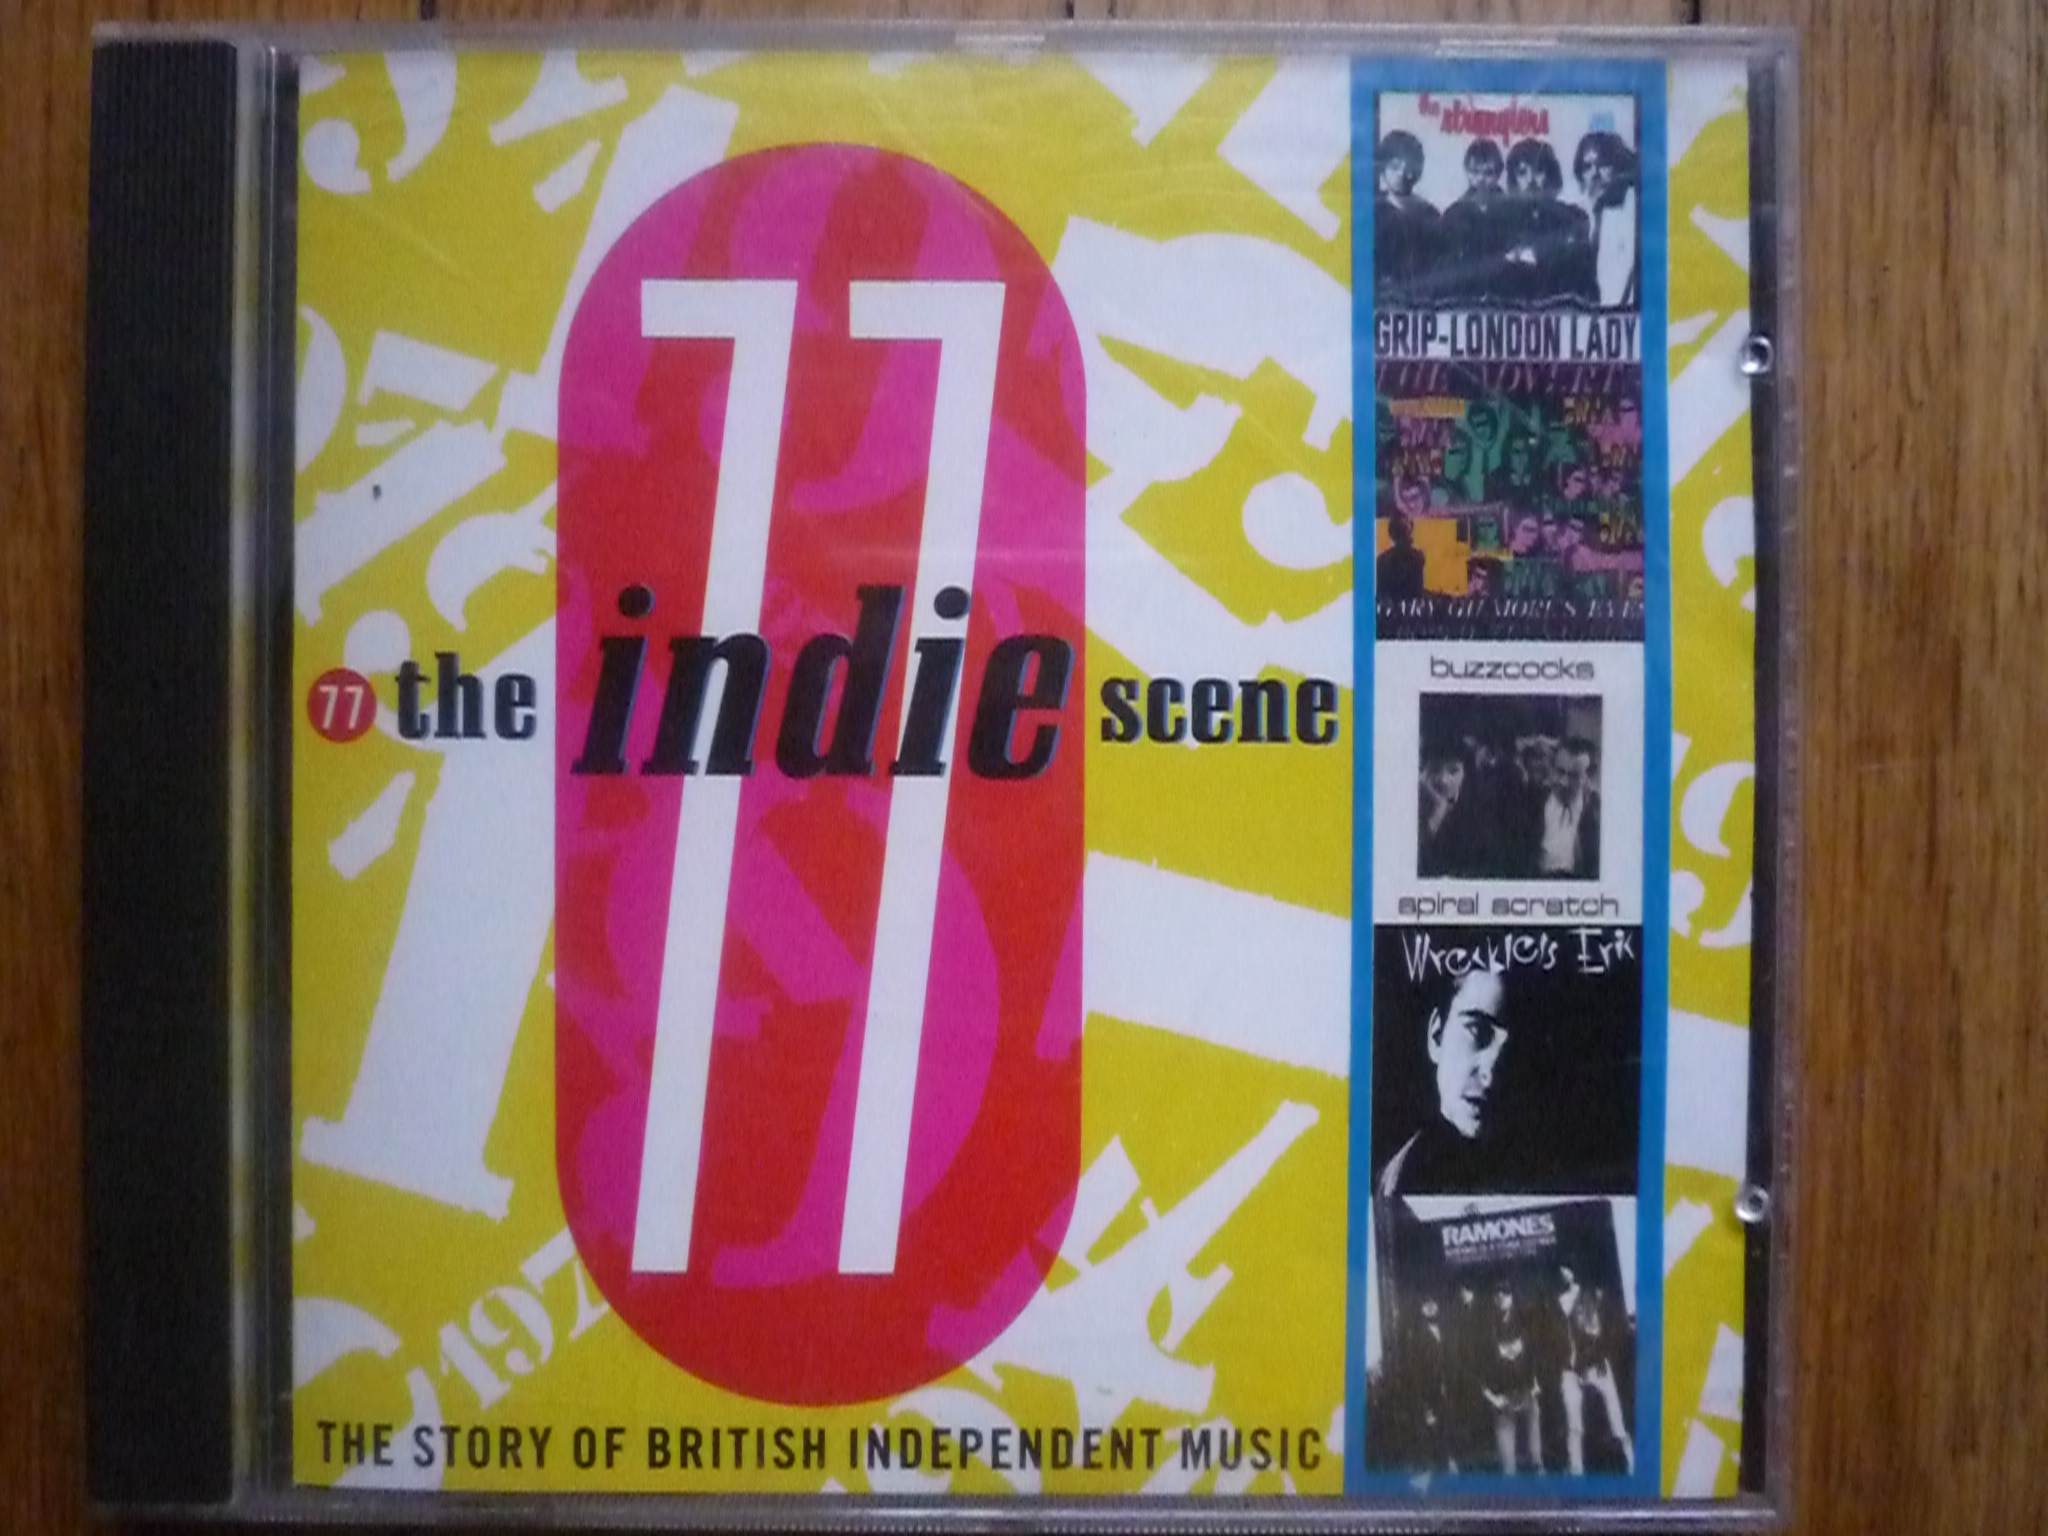 V.A. THE INDIE SCENE 77 R (INDEPENDENT MUSIC) CD